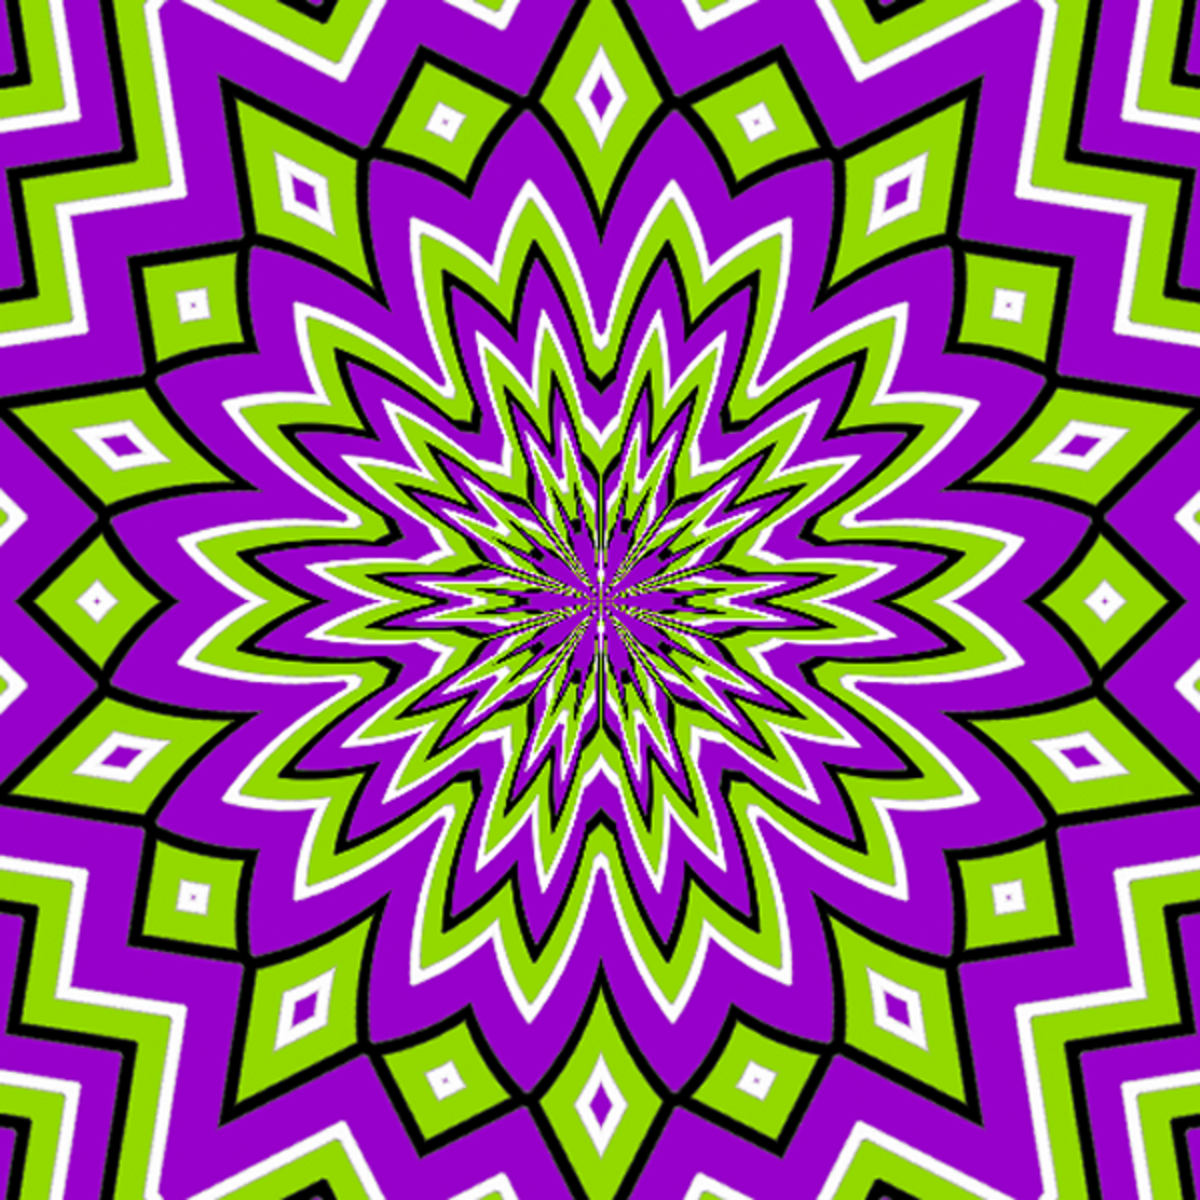 eye-tomfoolery-some-fun-optical-illusions